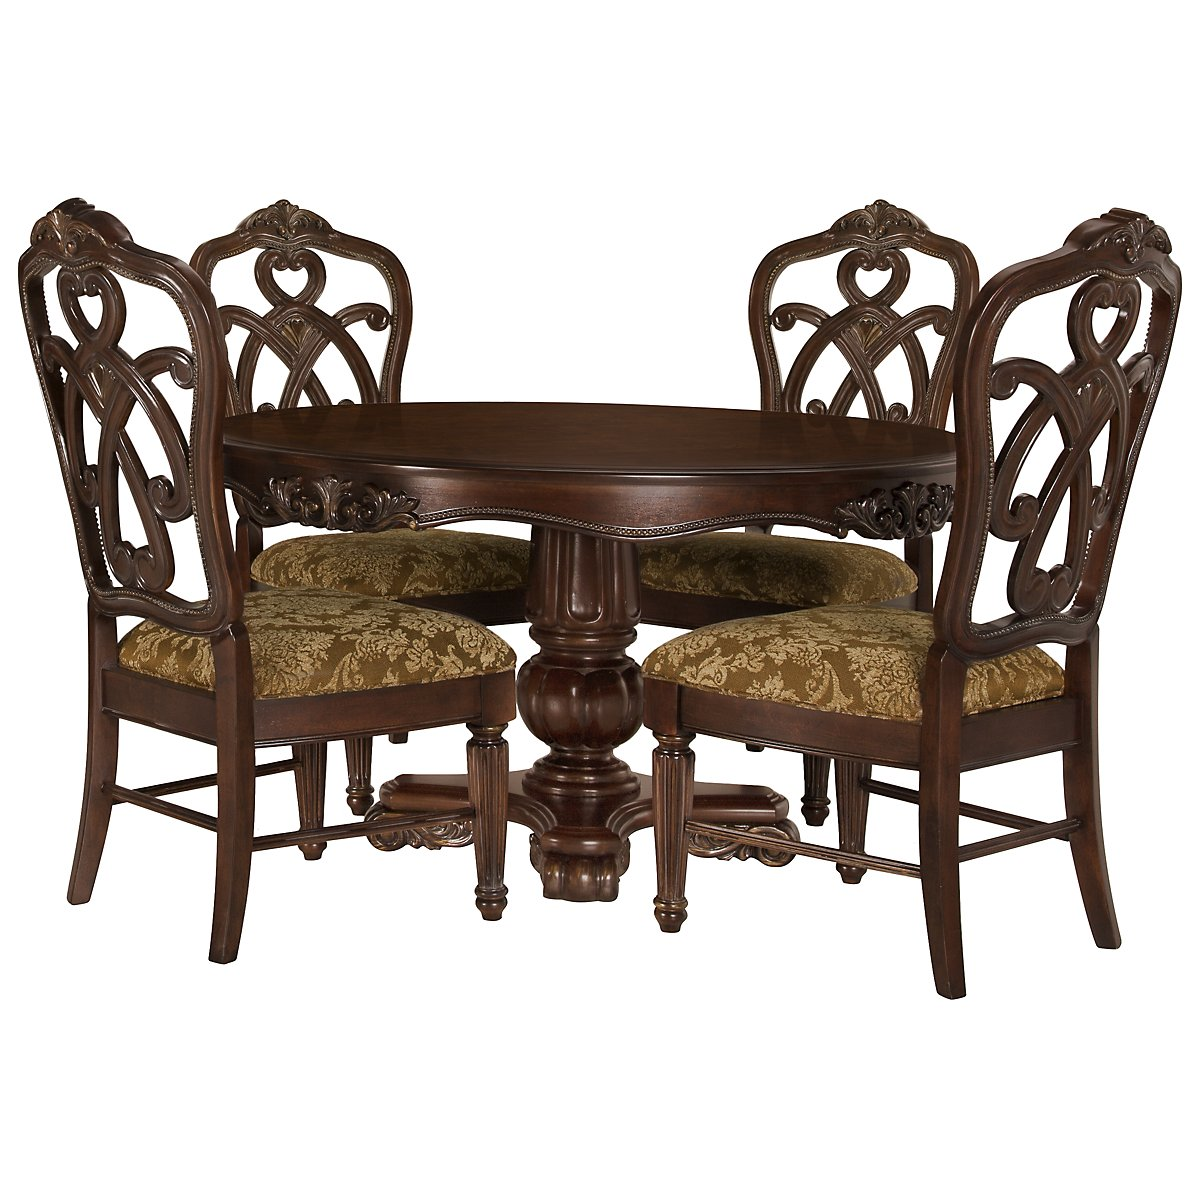 Regal Dark Tone Round Table & 4 Wood Chairs